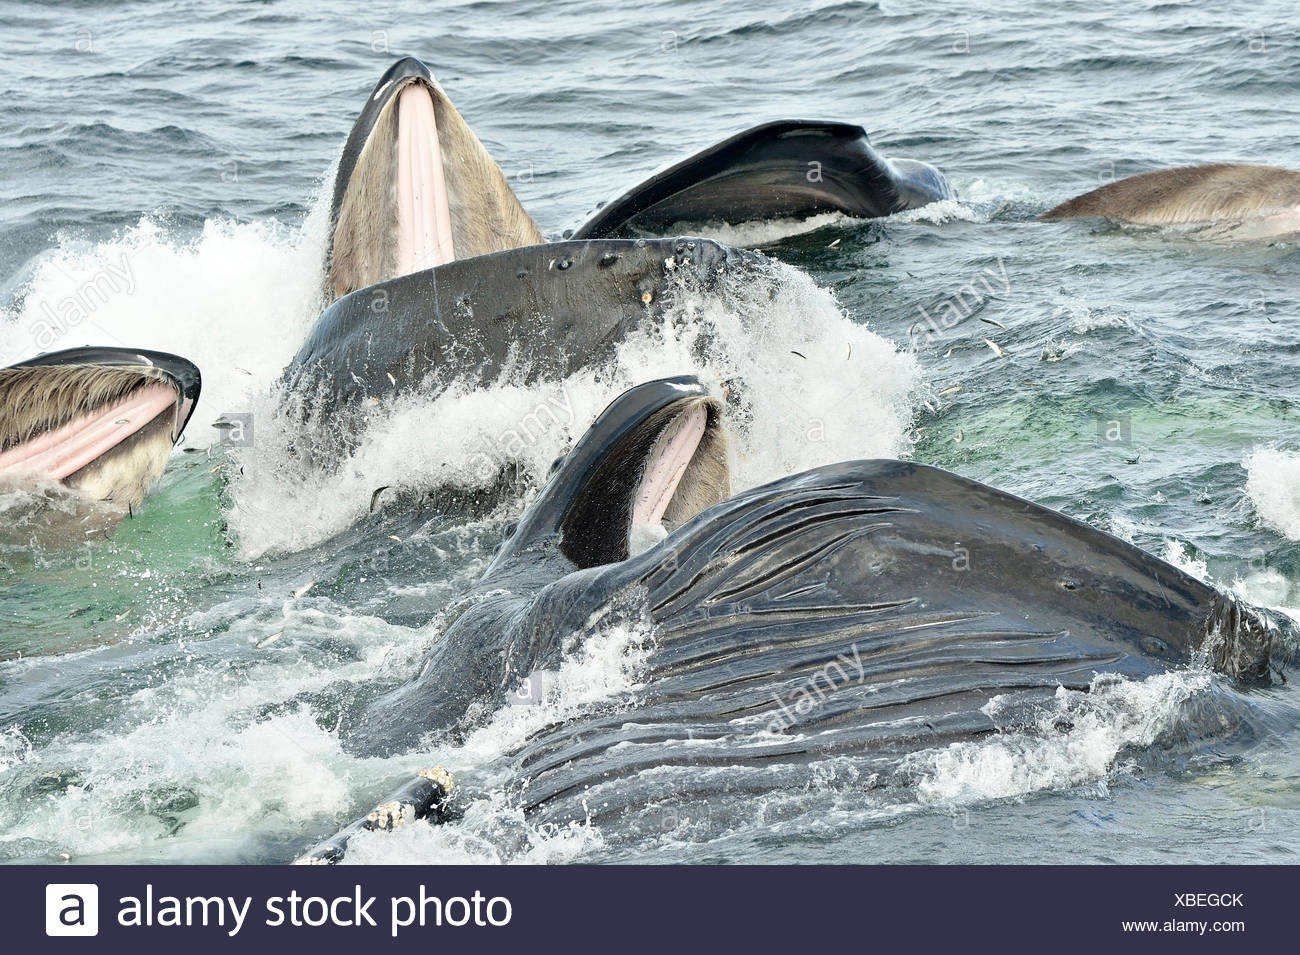 Close-up of the baleen's of Humpback whales breaking the surface as they bubble net feed in the waters near Catherine Island, - Stock Image